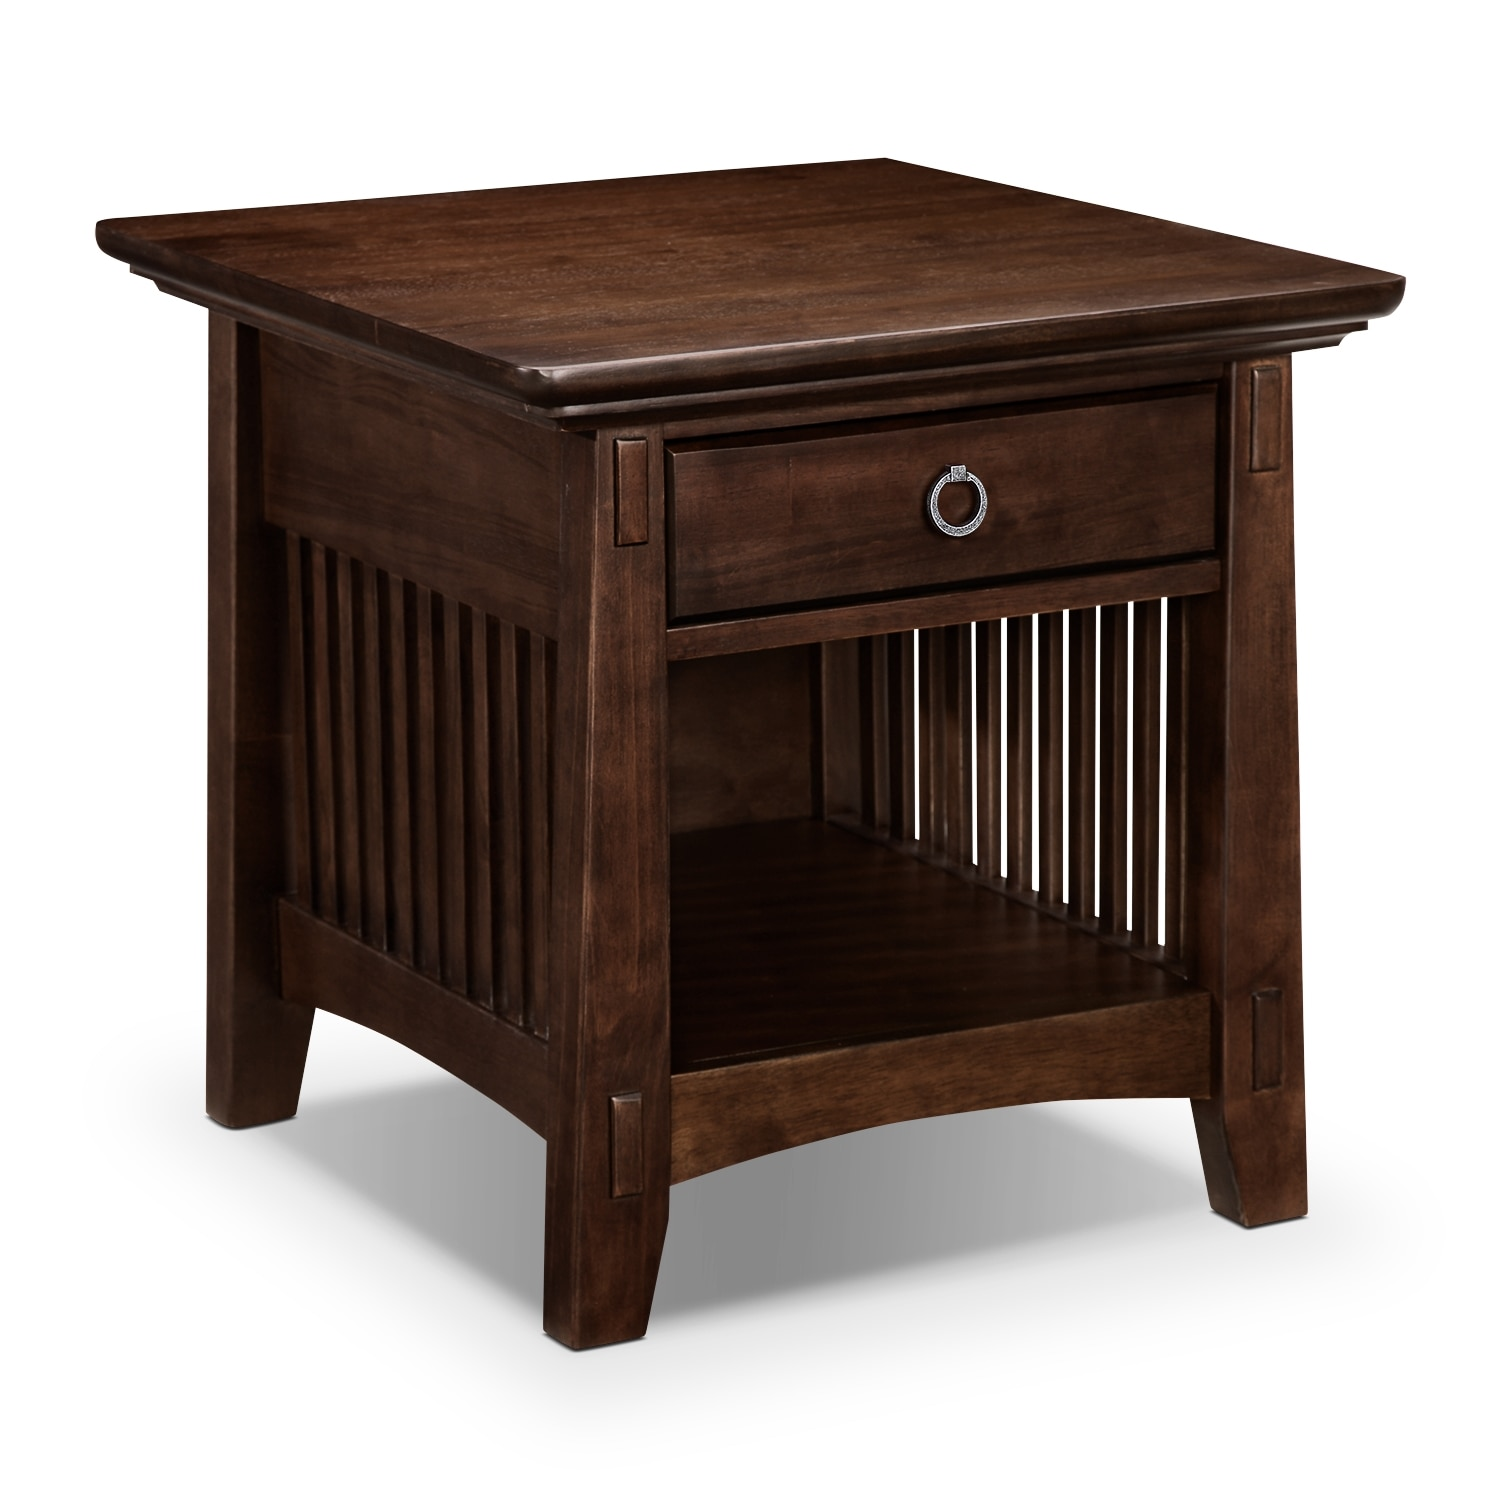 Accent and Occasional Furniture - Arts & Crafts Dark End Table